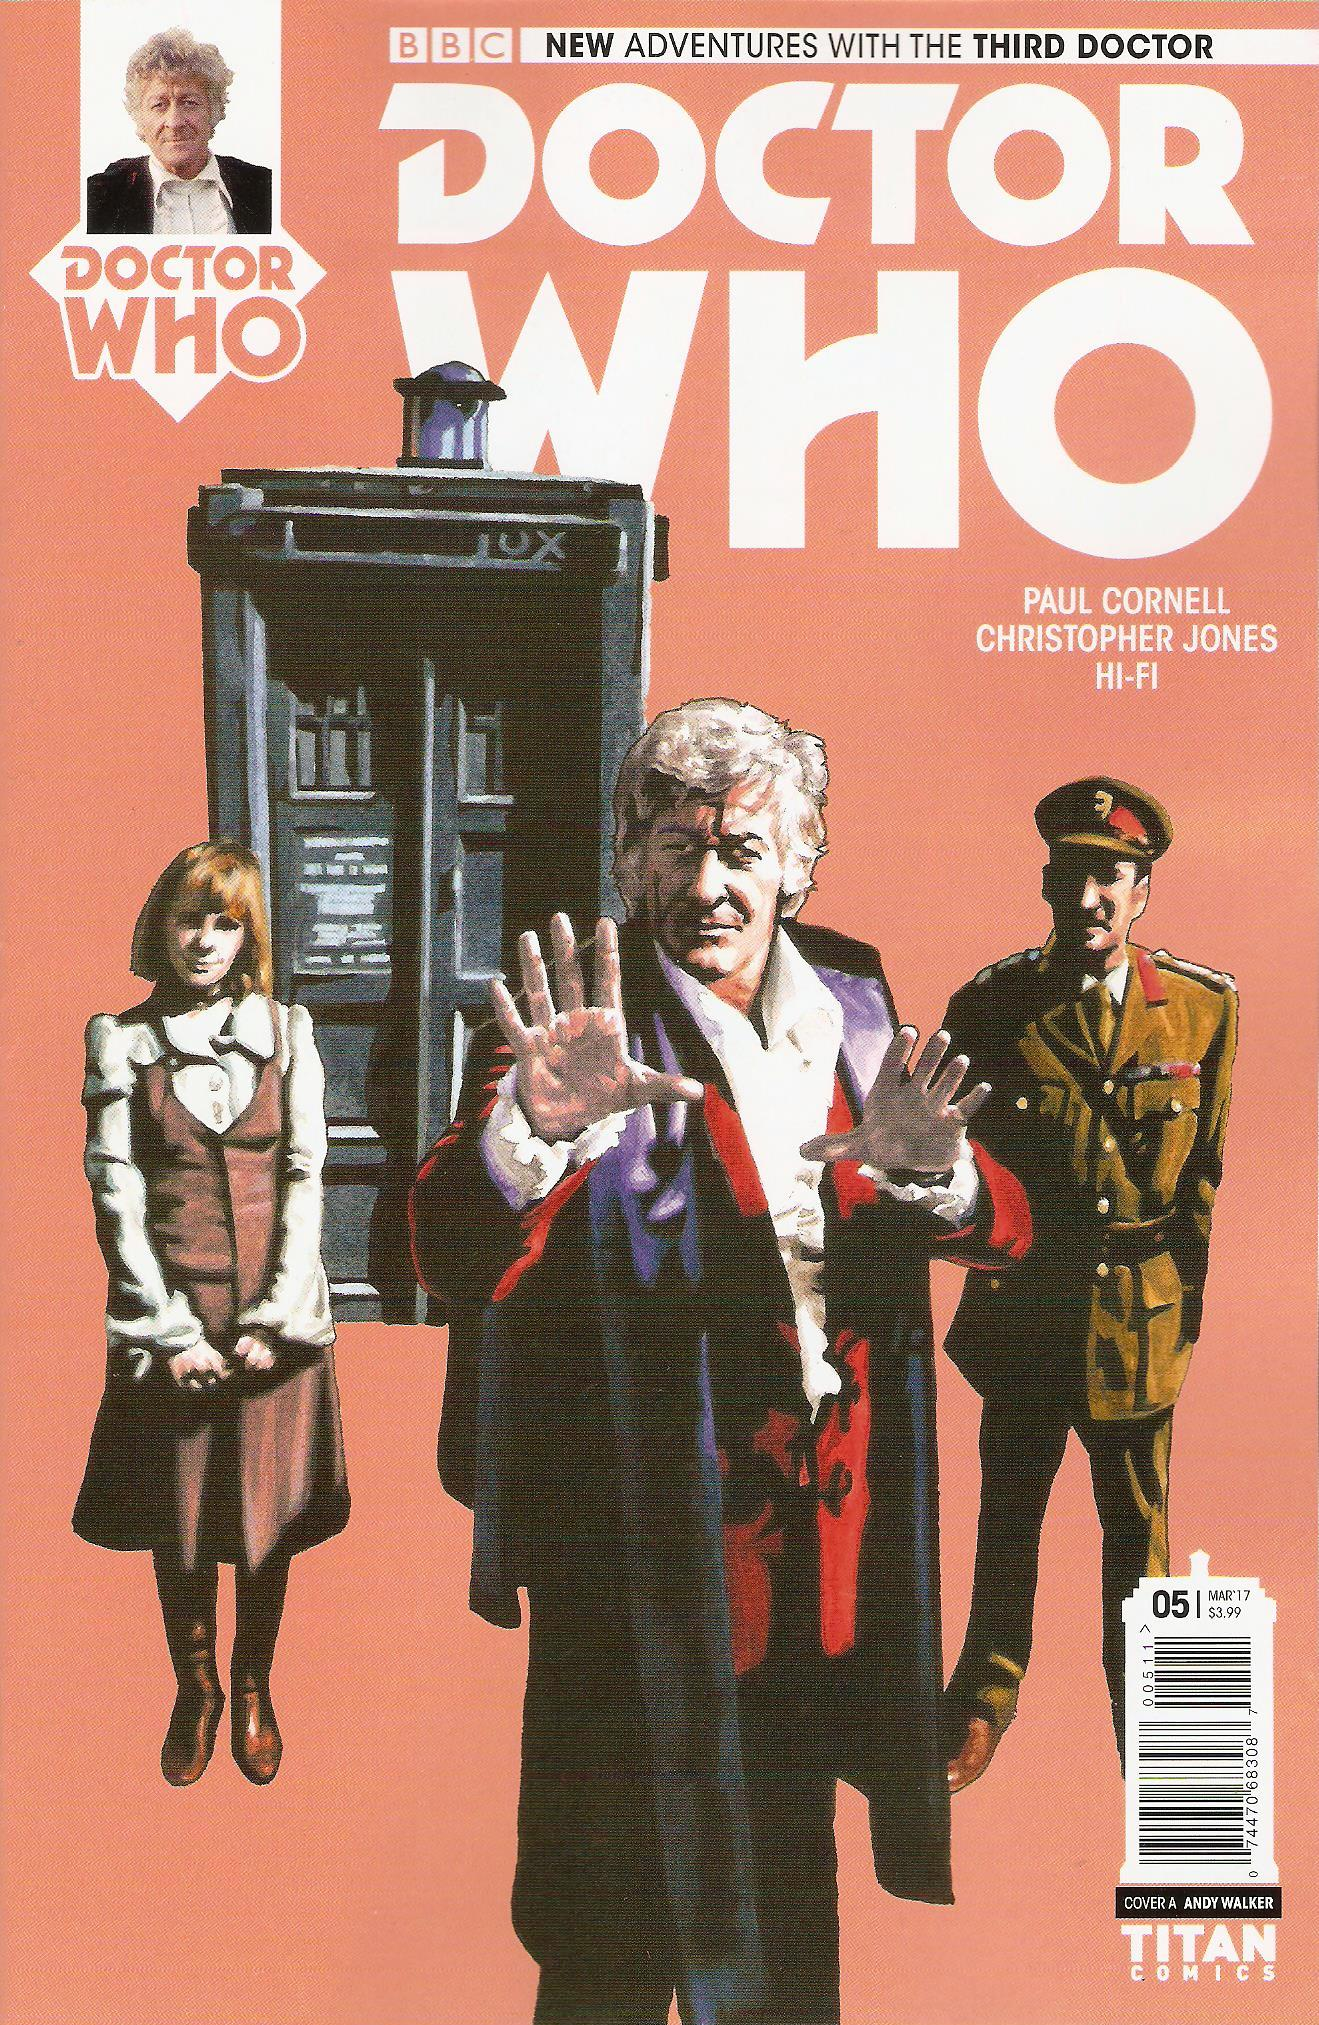 Third doctor issue 5a